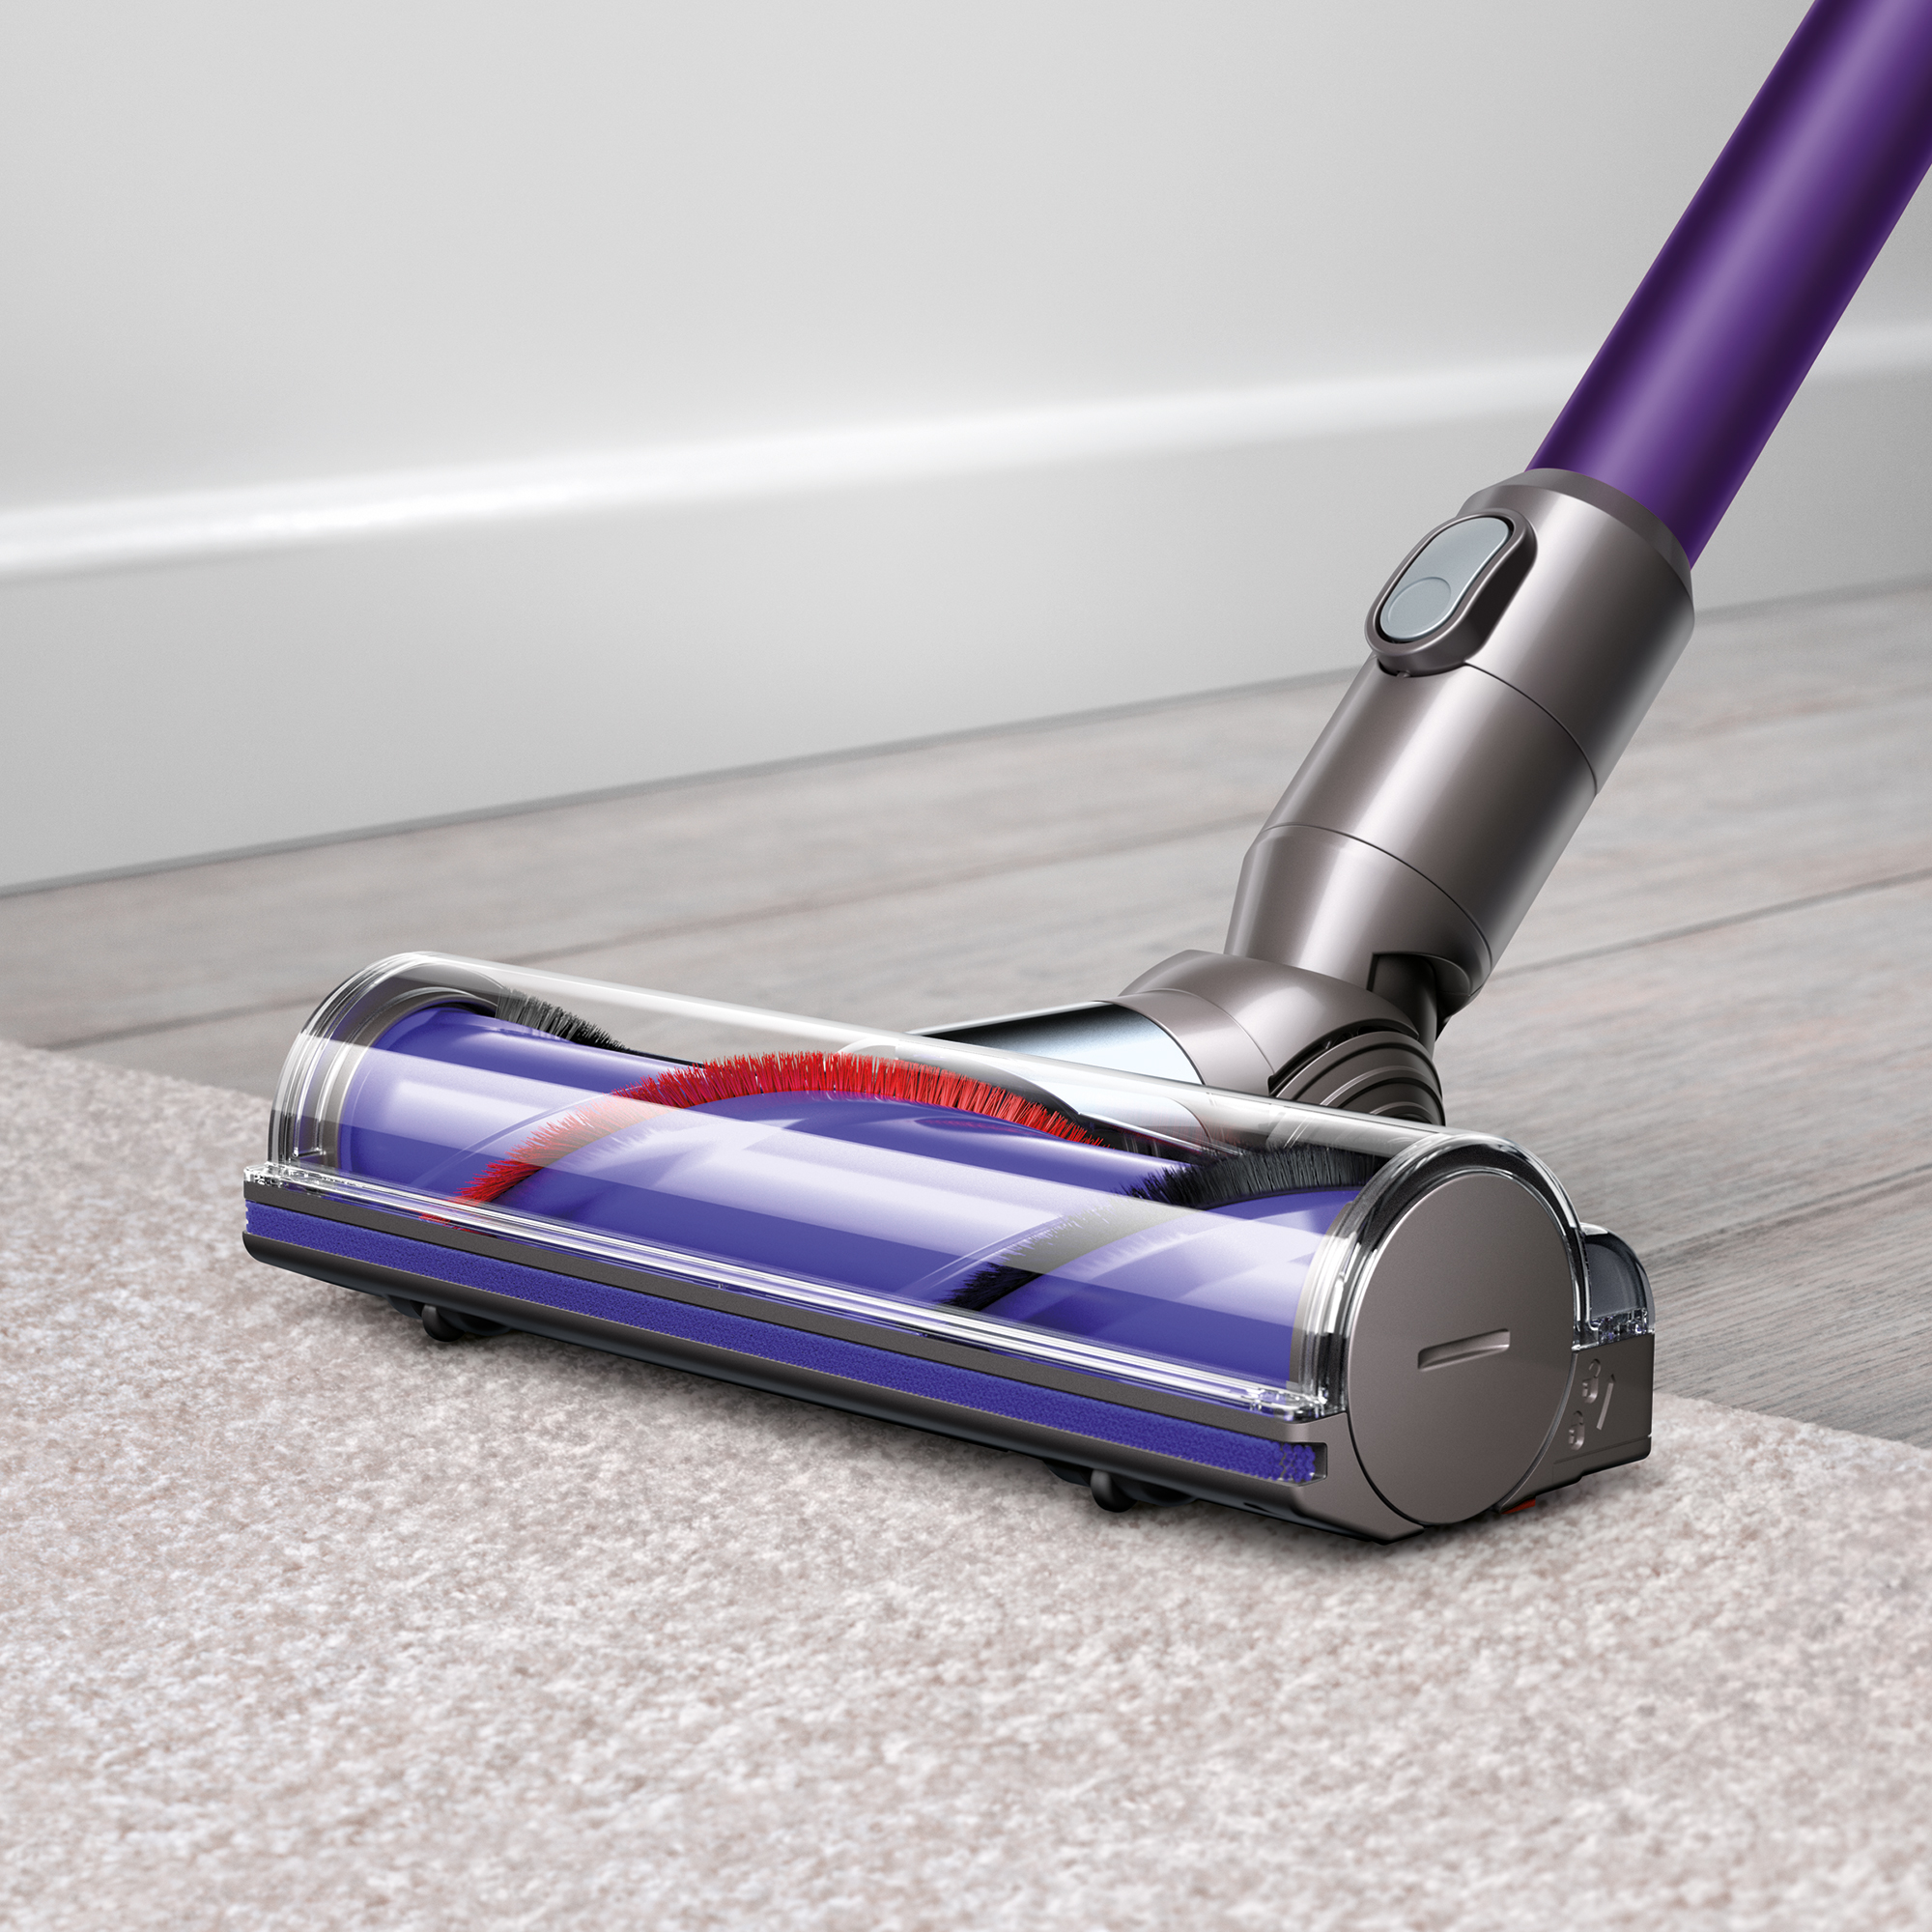 Dyson-V6-Animal-Cordless-Vacuum-Refurbished thumbnail 3